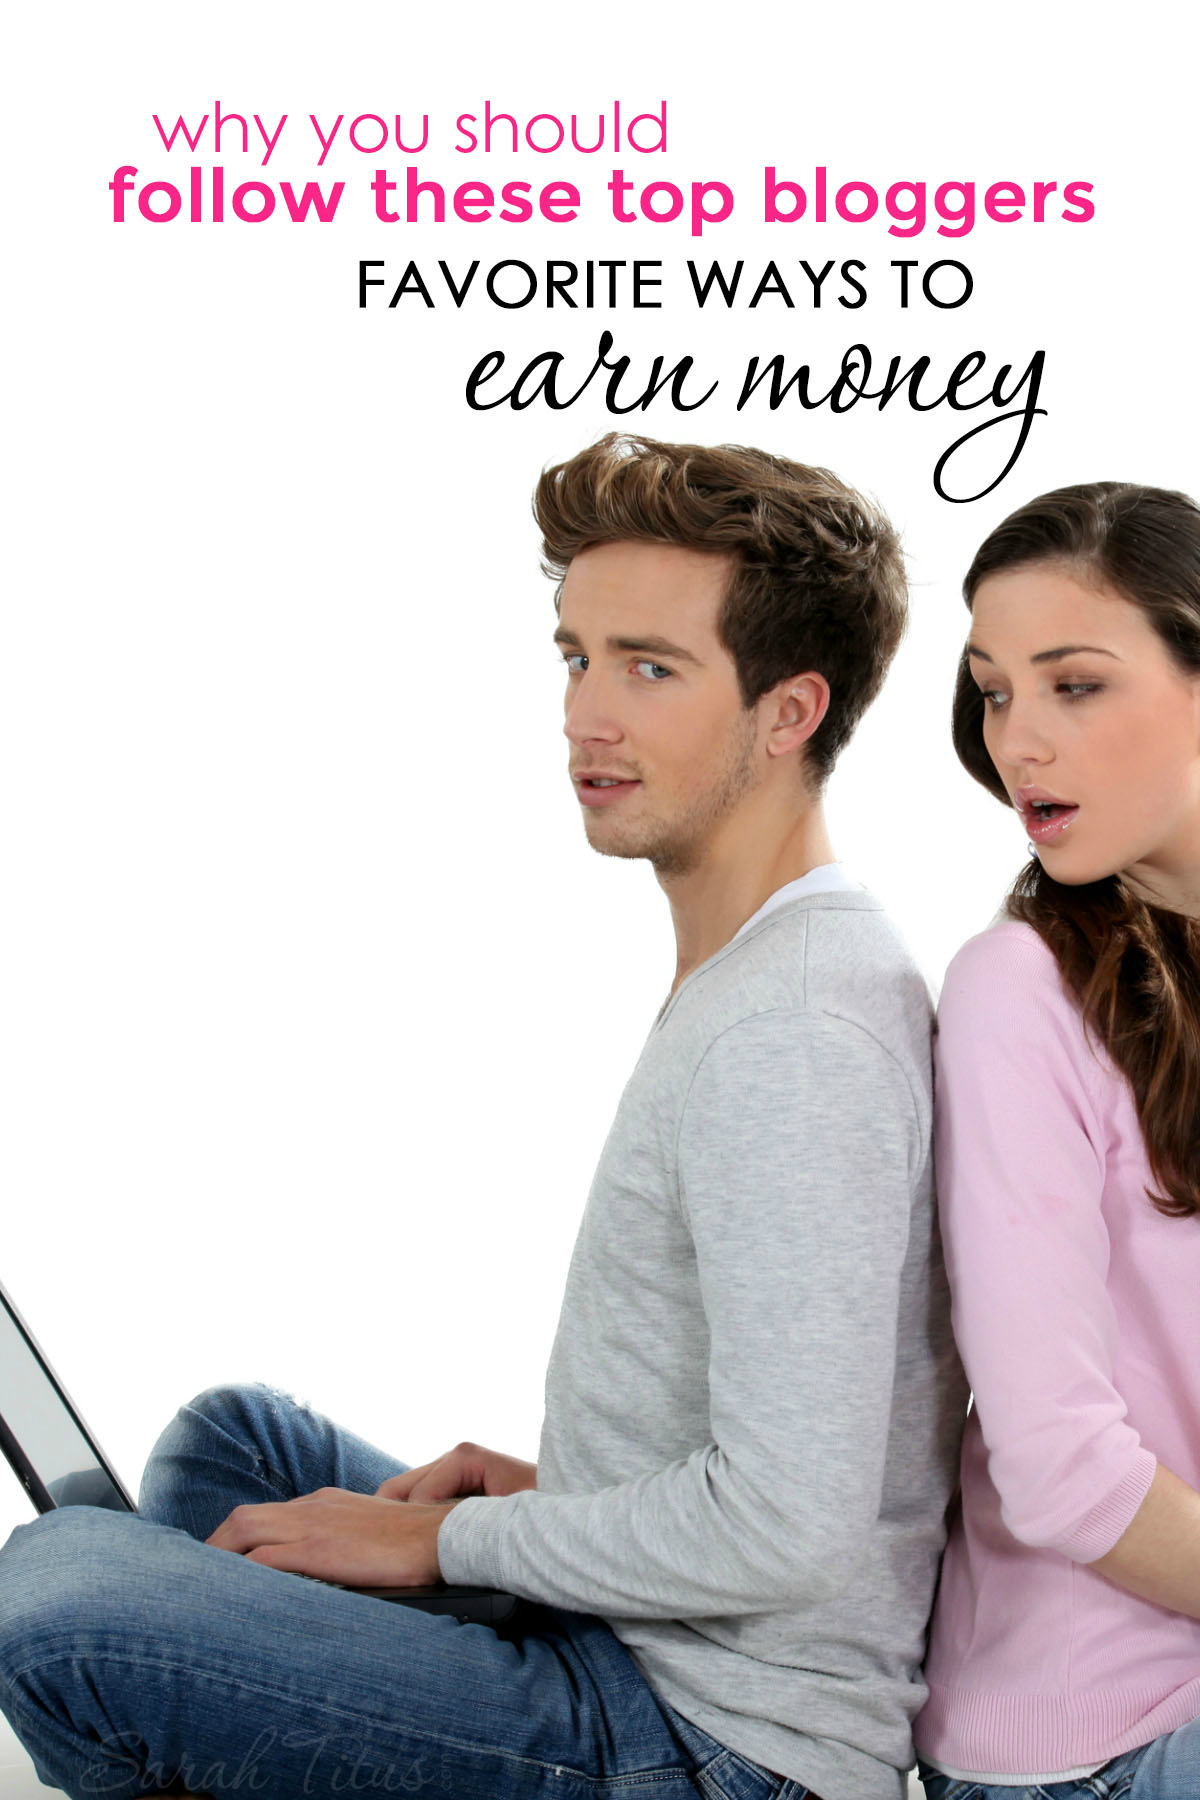 Why You Should Follow These Top Bloggers Favorite Ways to Earn Money